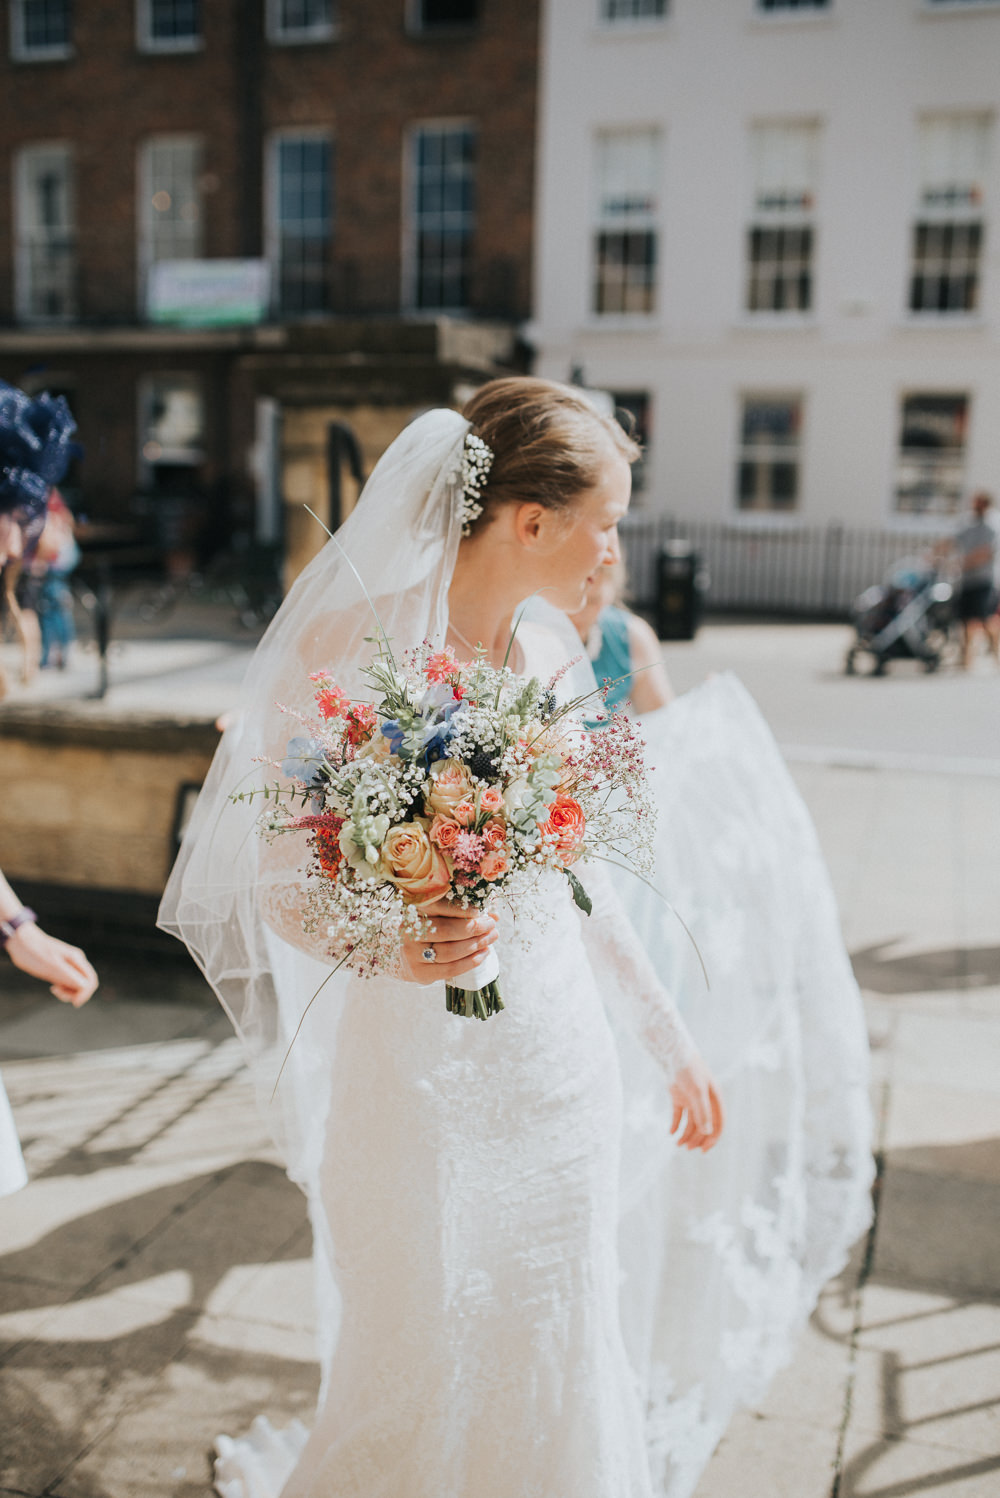 Lace Dress Gown Bride Bridal Sleeves Buttons Illusion Plunge Long Bouquet Flowers Pretty Countryside Wedding Cotswolds Kate Waters Photography